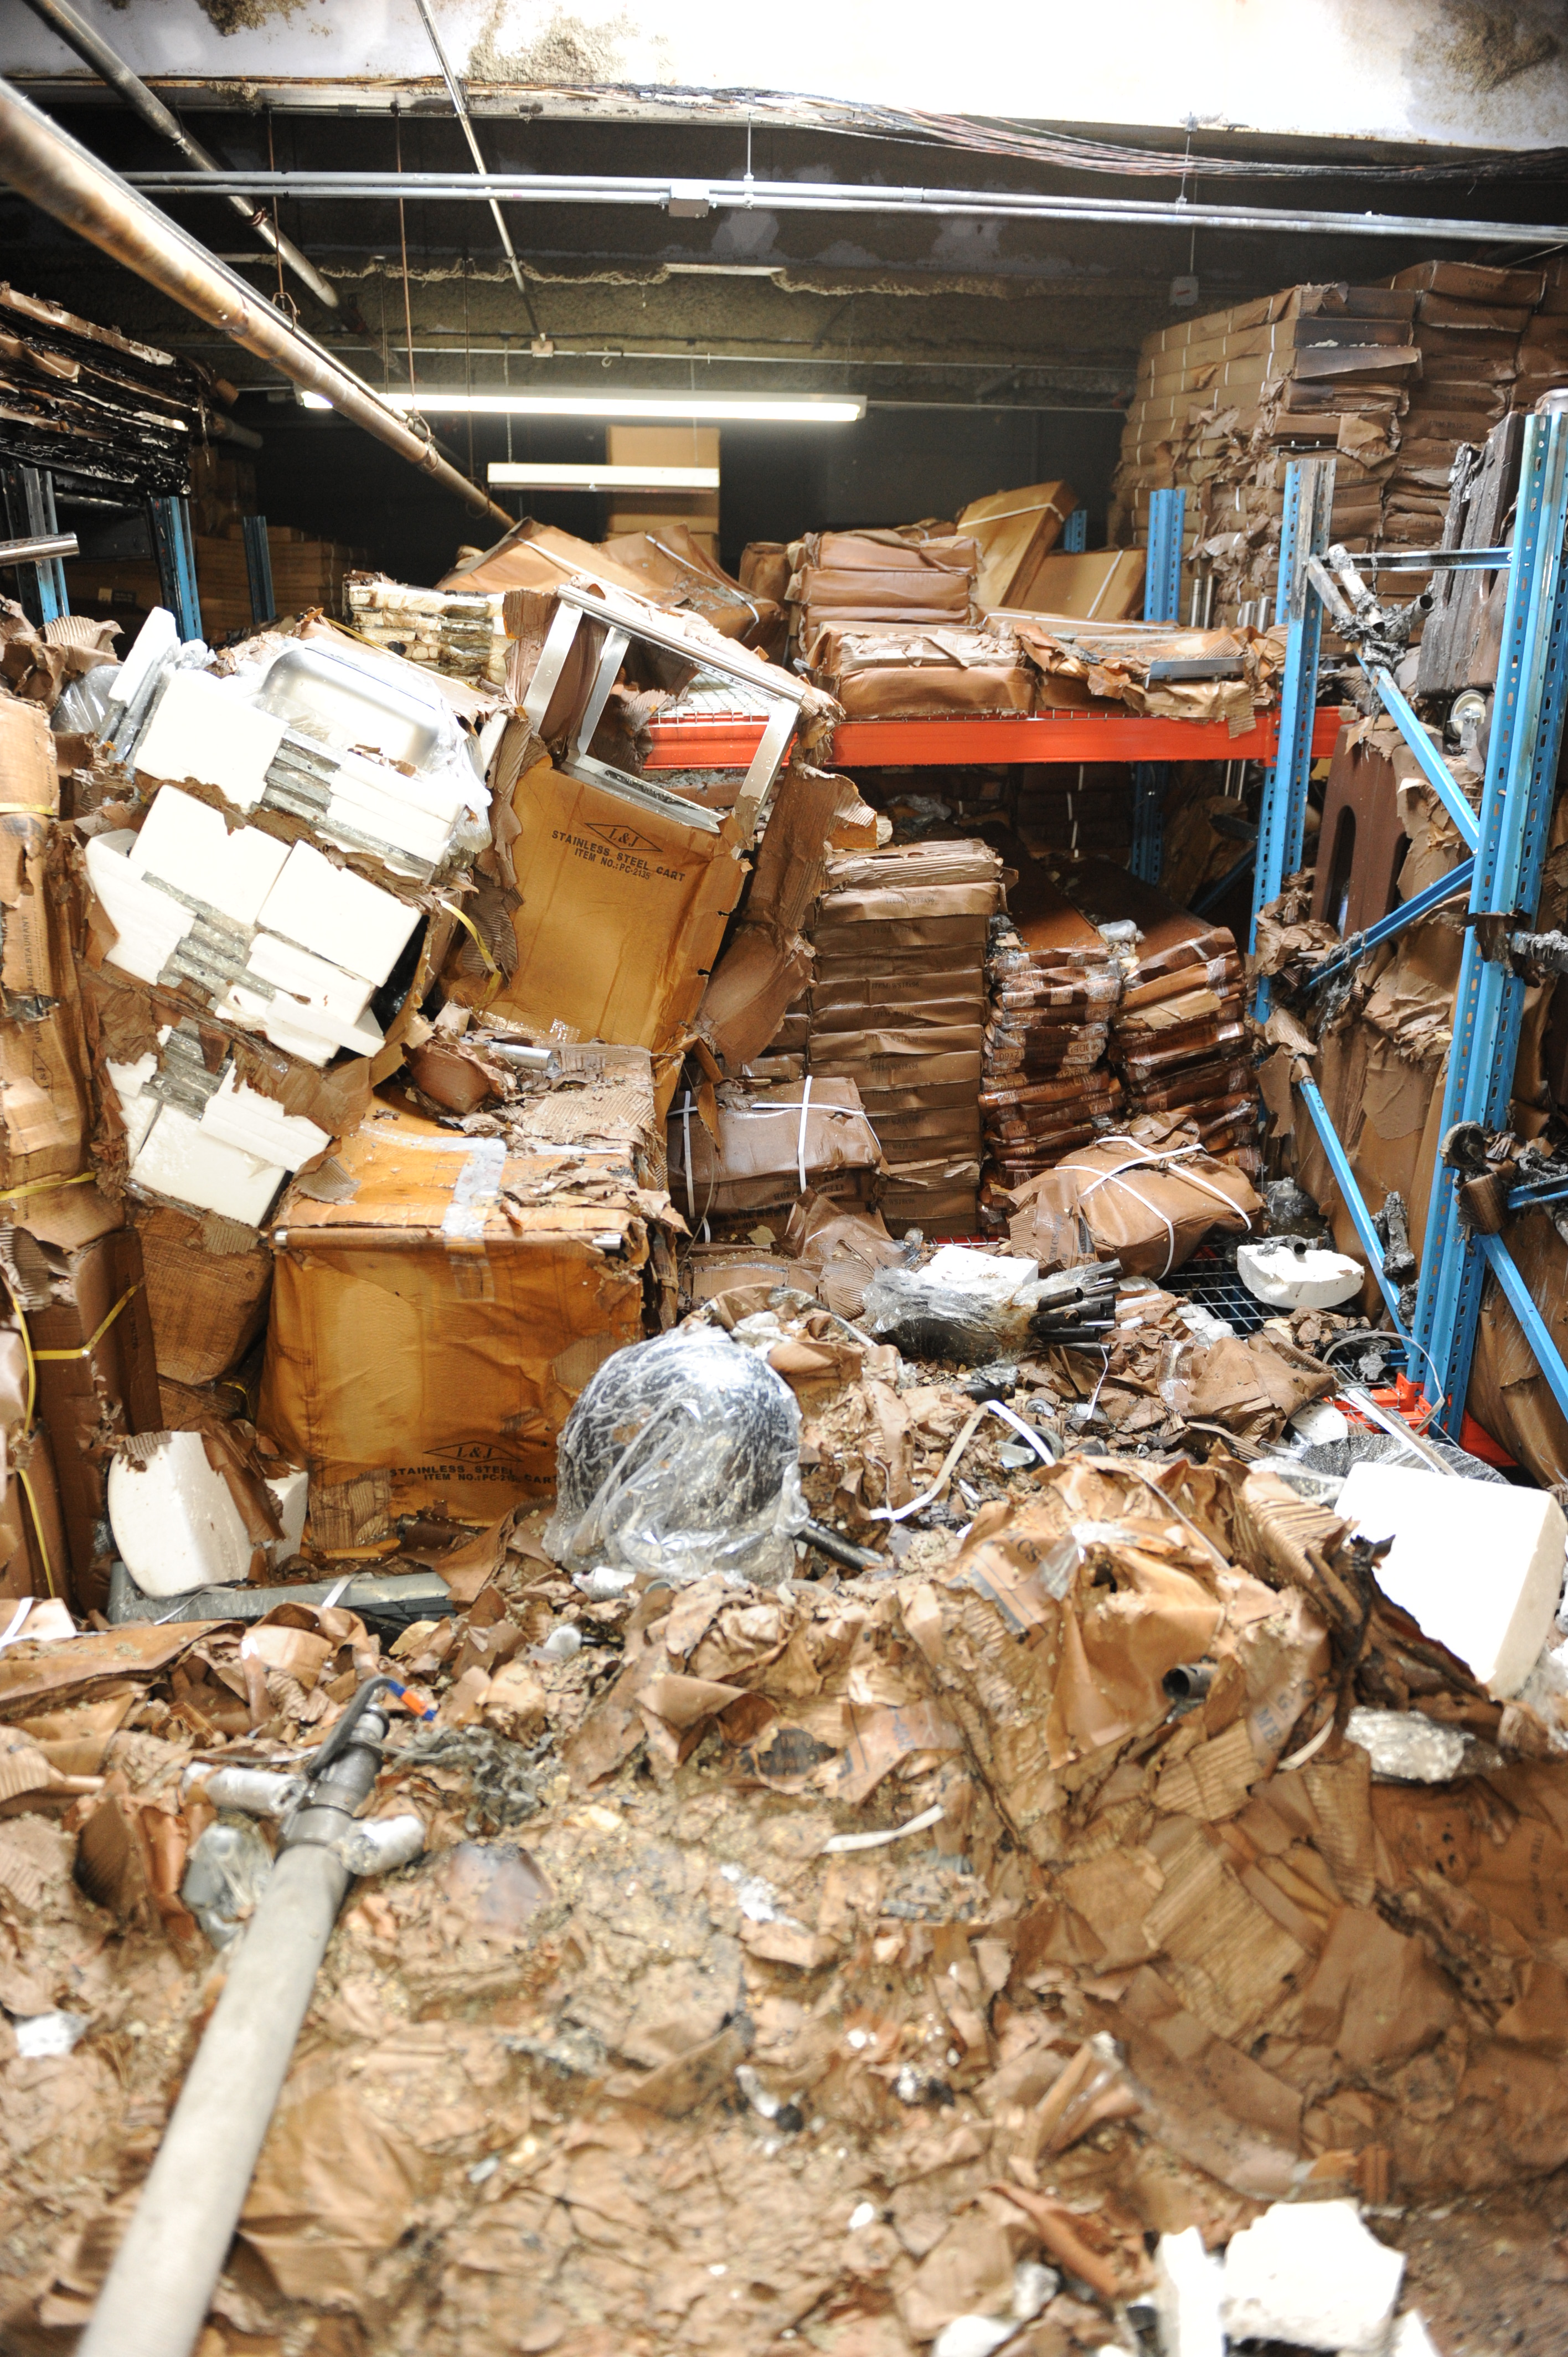 The fire area contains cardboard boxes damage by the fire and water used to suppress the fire.  Many of the cardboard boxes have fallen off the storage racks and broken open revealing plastic shelving and restaurant equipment.